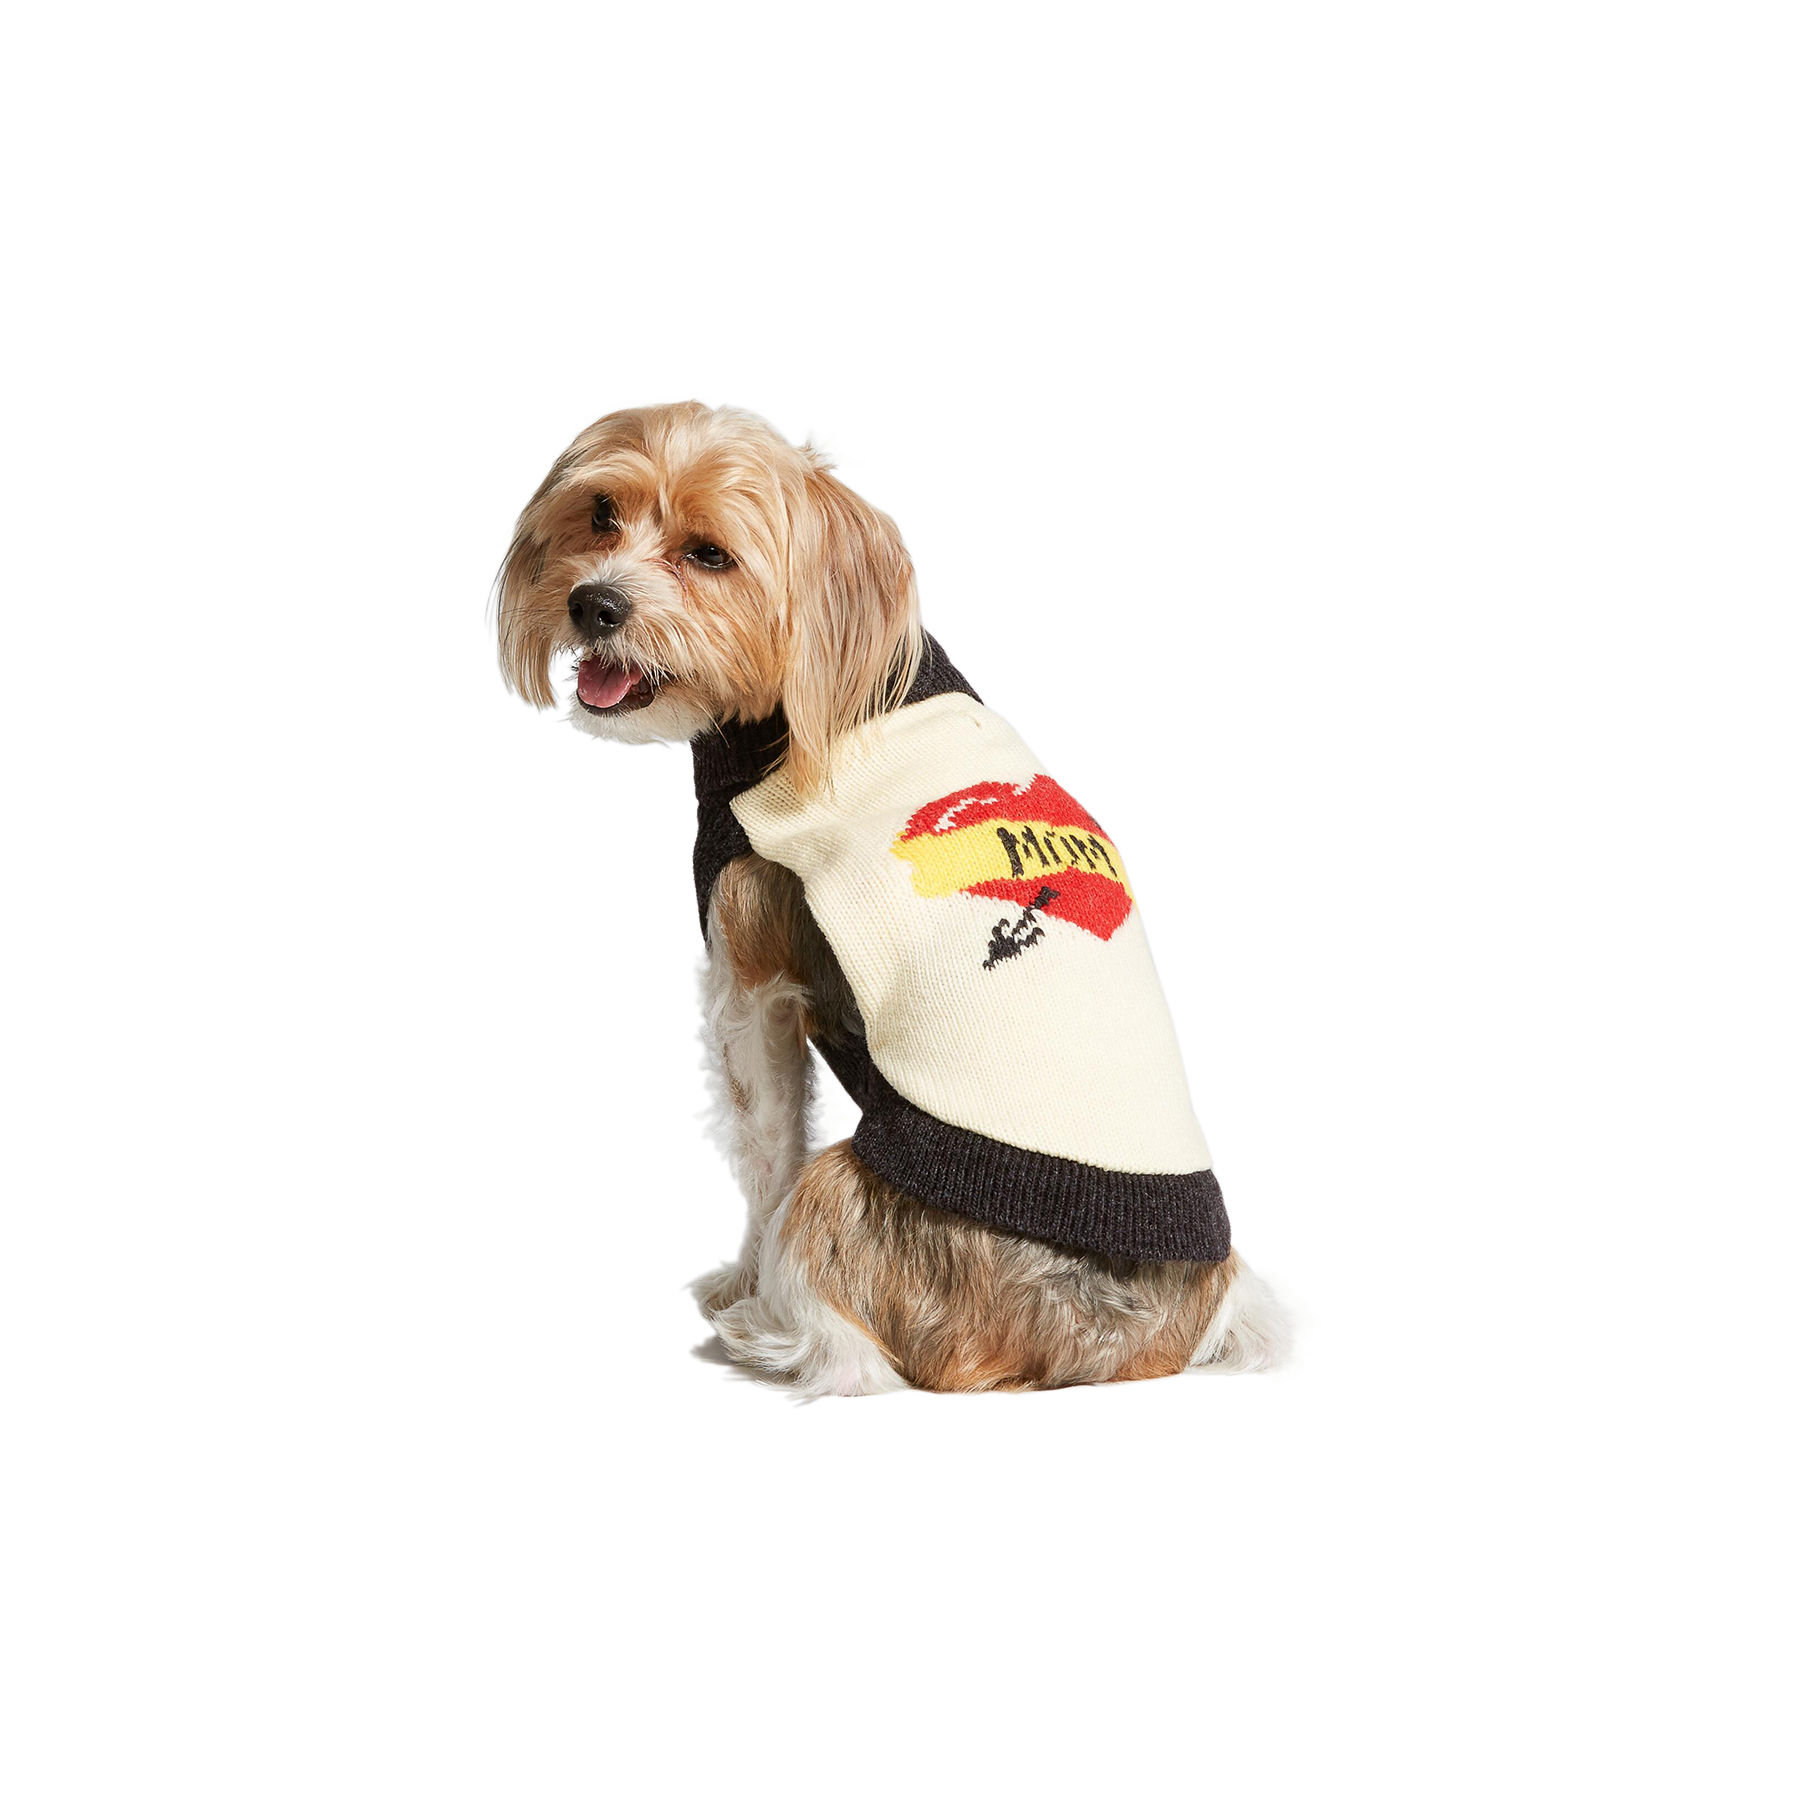 Mom Tattoo Knit Dog Sweater